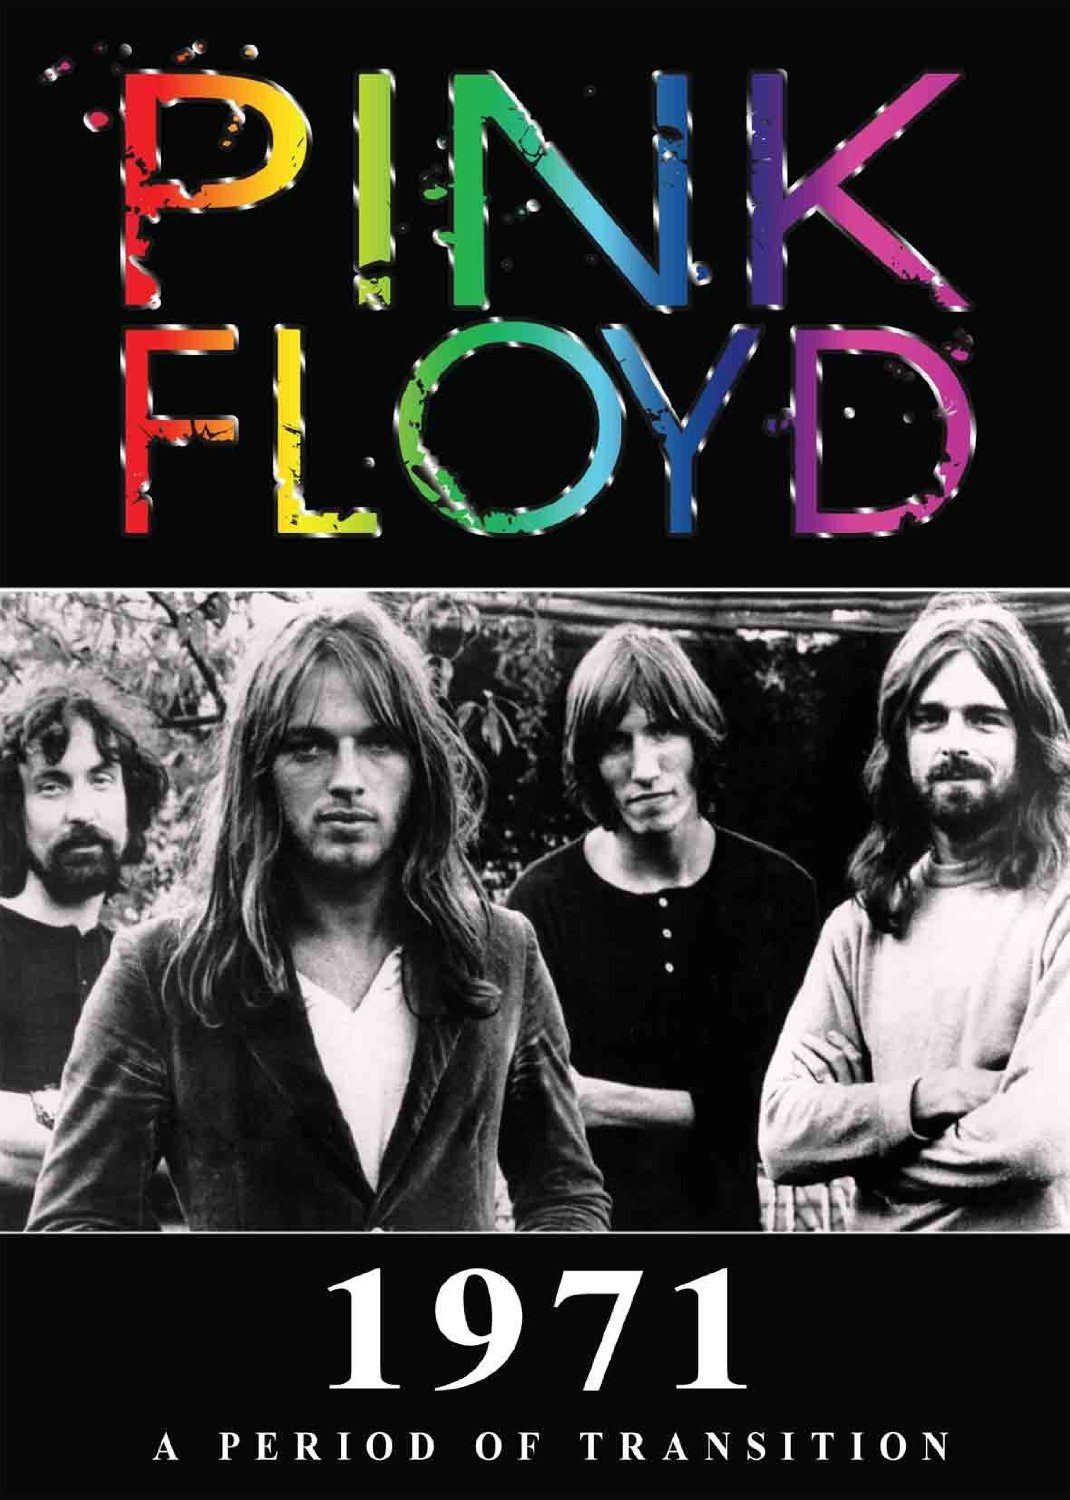 PINK FLOYD - 1971 A Period Of Transition (DVD IMPORT ZONE 2) - DVD